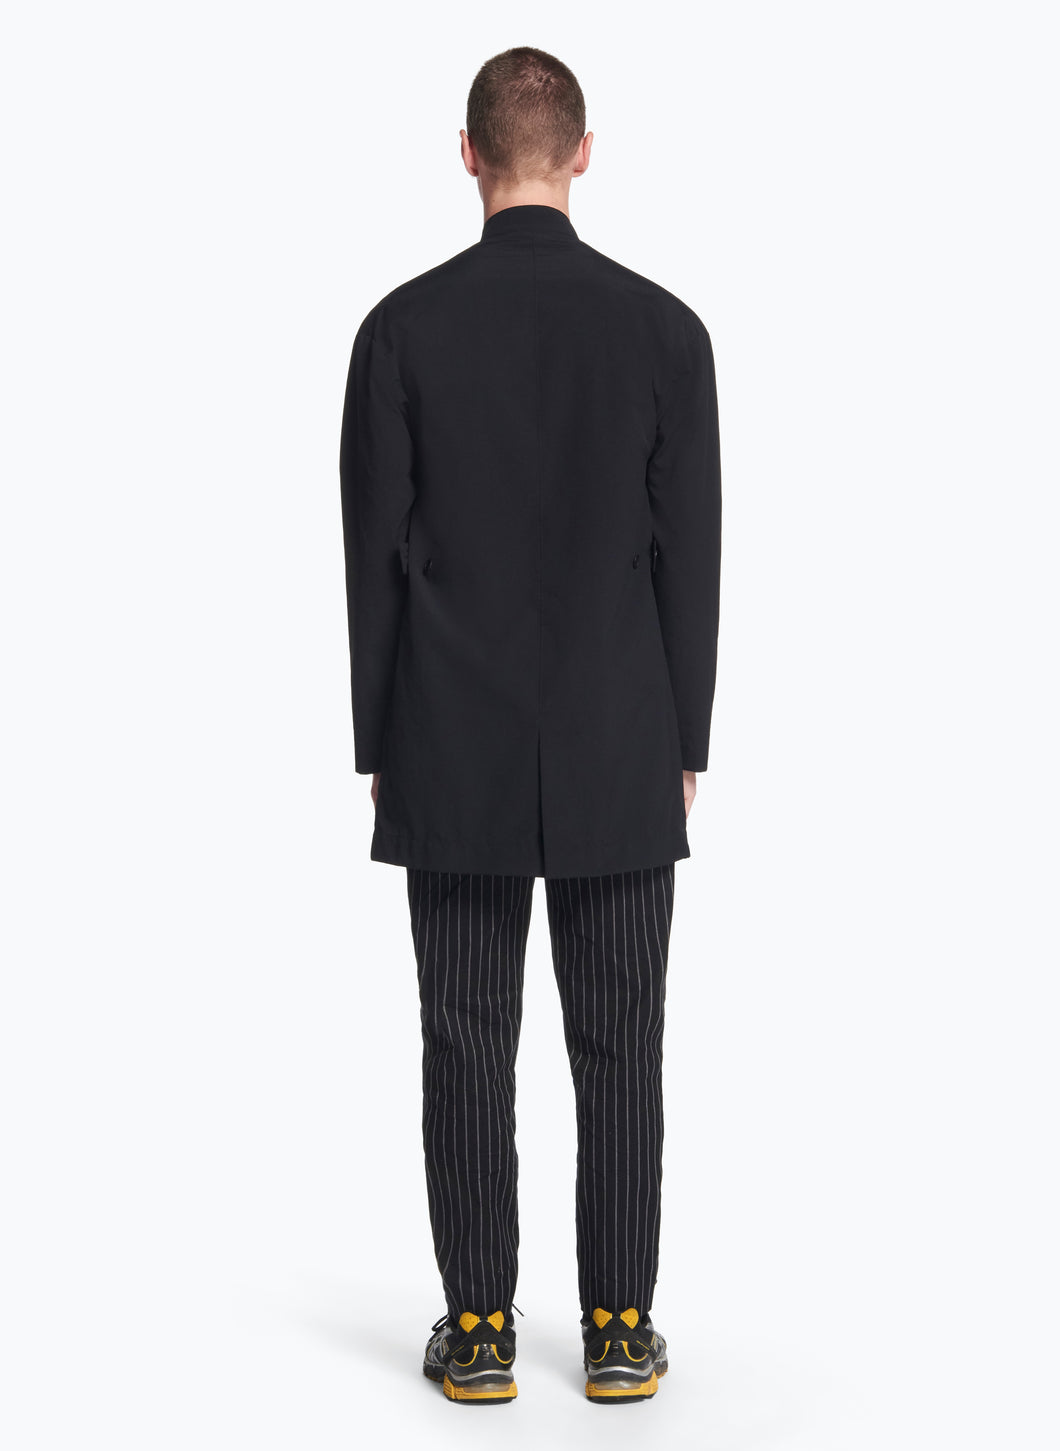 Mandarin Collar Overcoat in Black Ripstop